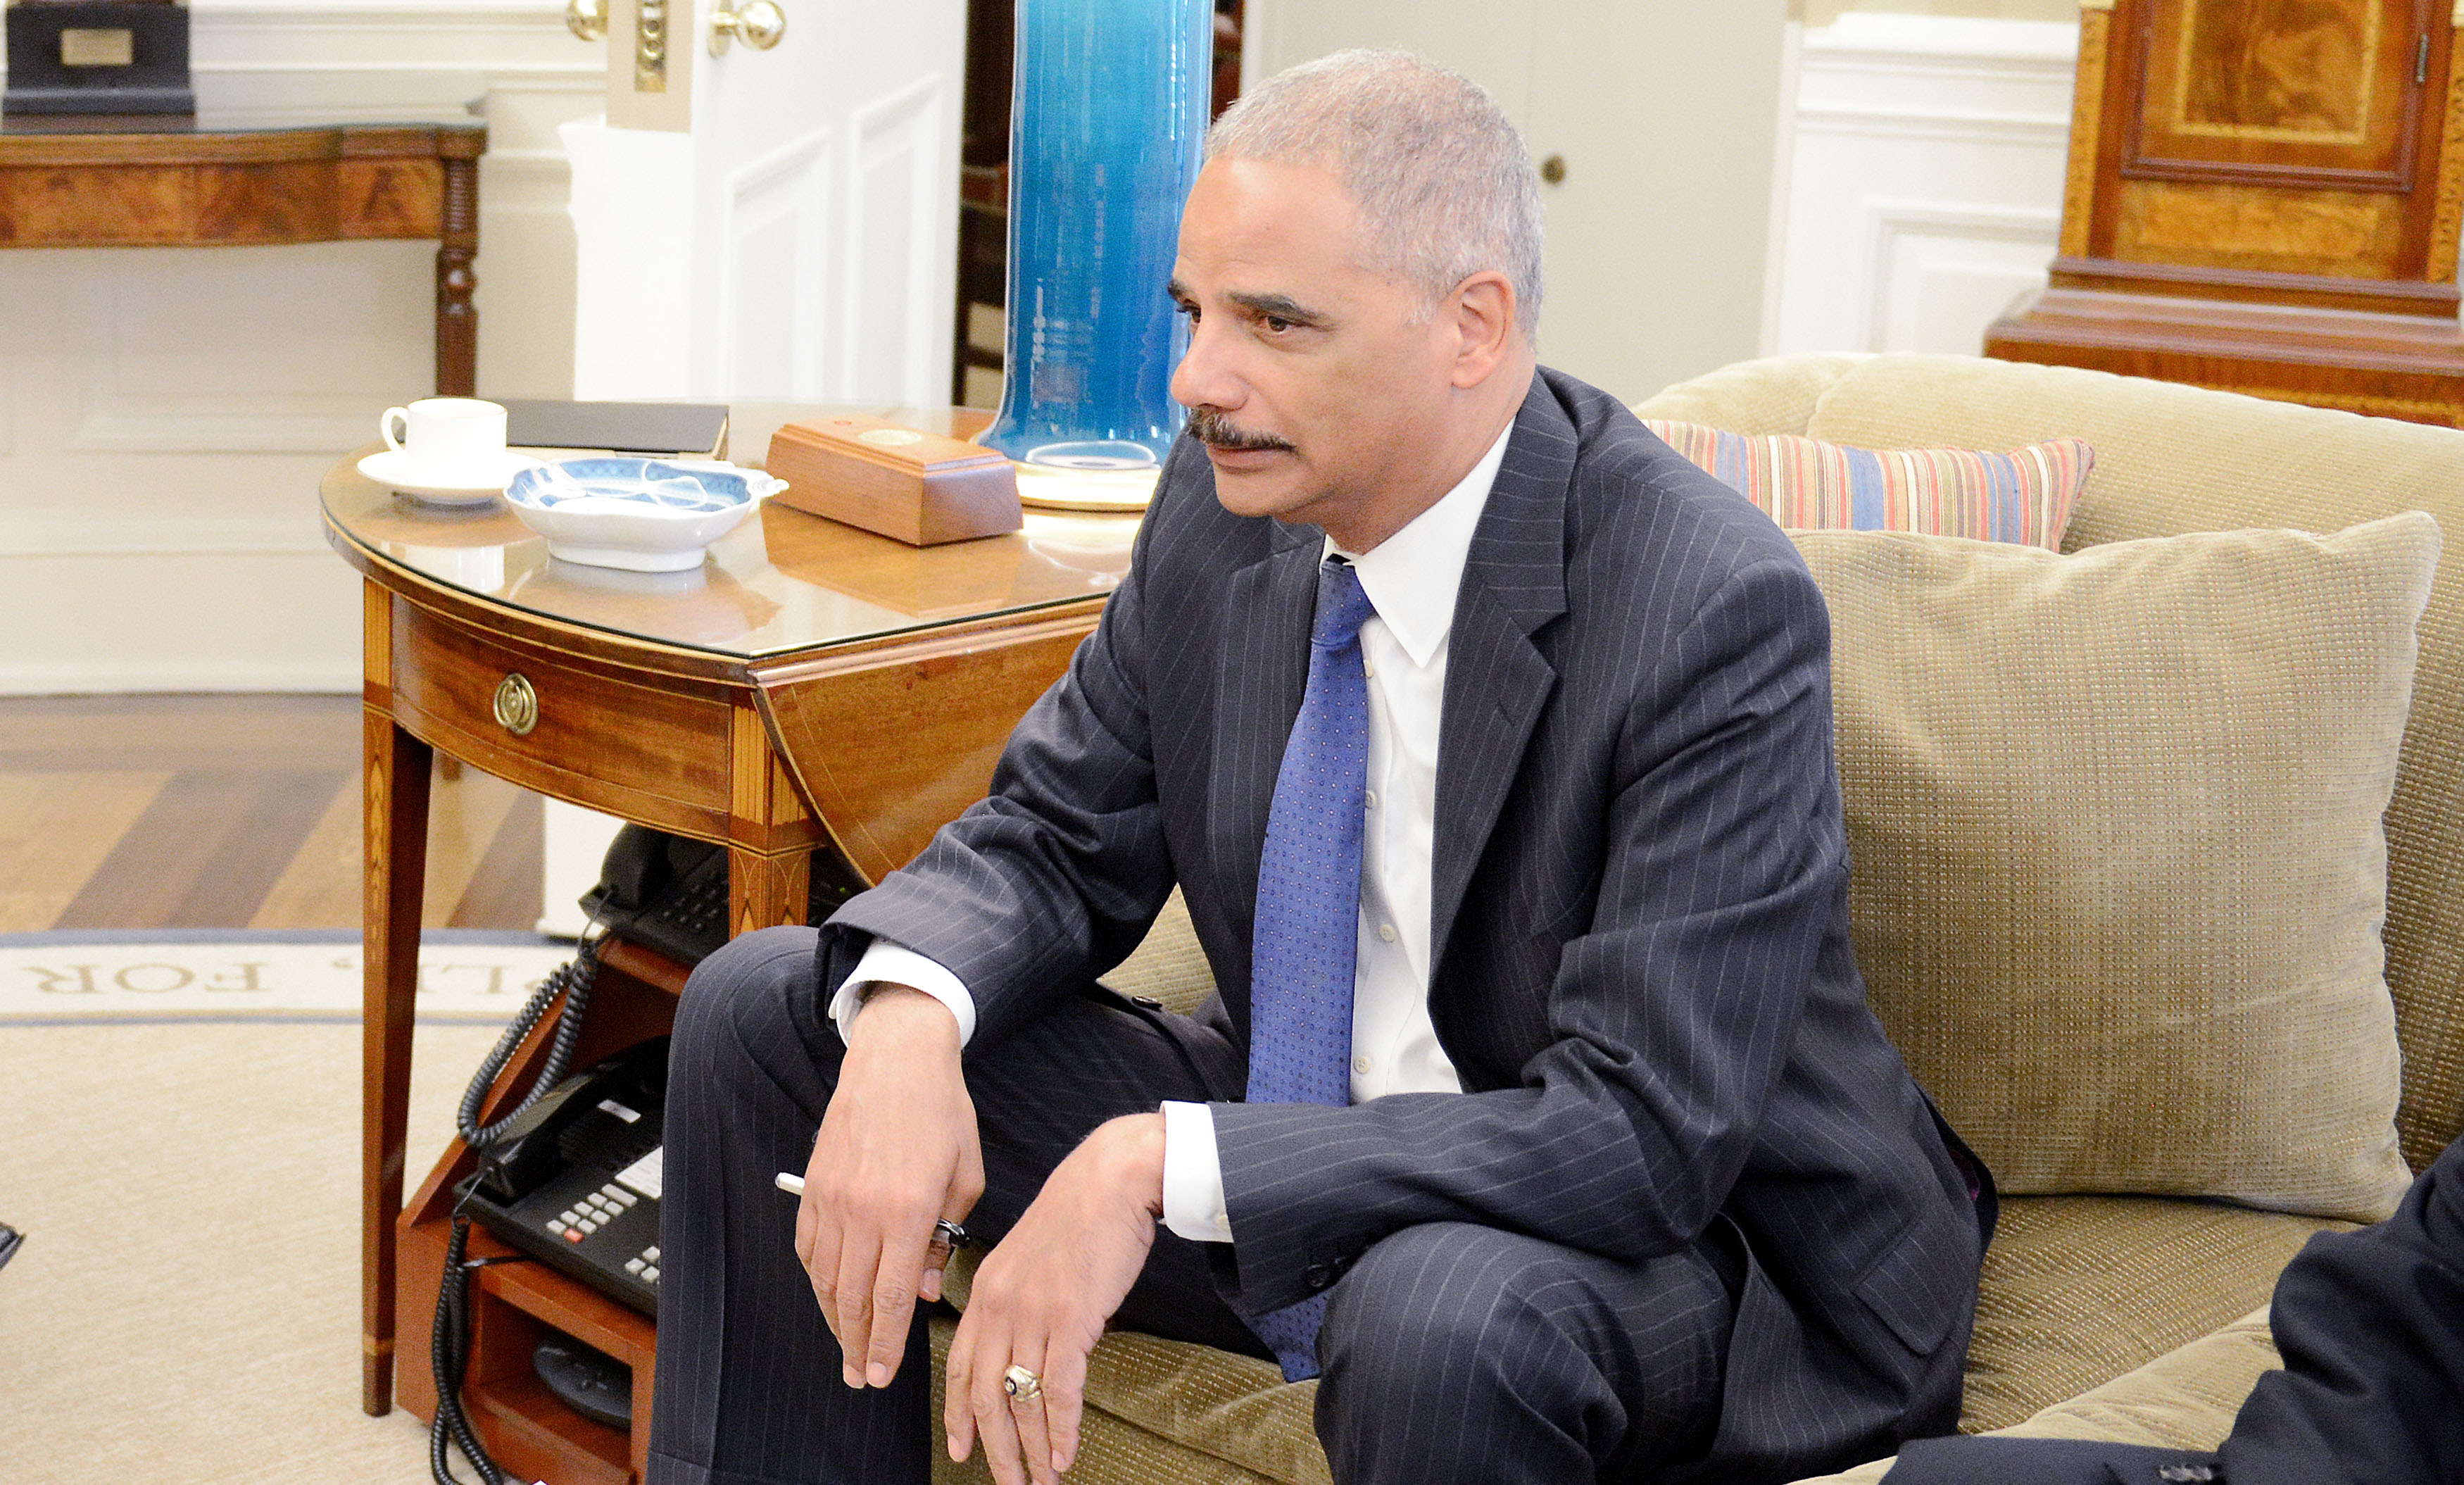 United States Attorney General Eric Holder looks on during a meeting in the Oval office of the White House with U.S. President Obama to receive an update on the situation in Ferguson, Missouri August 18, 2014 in Washington, DC.